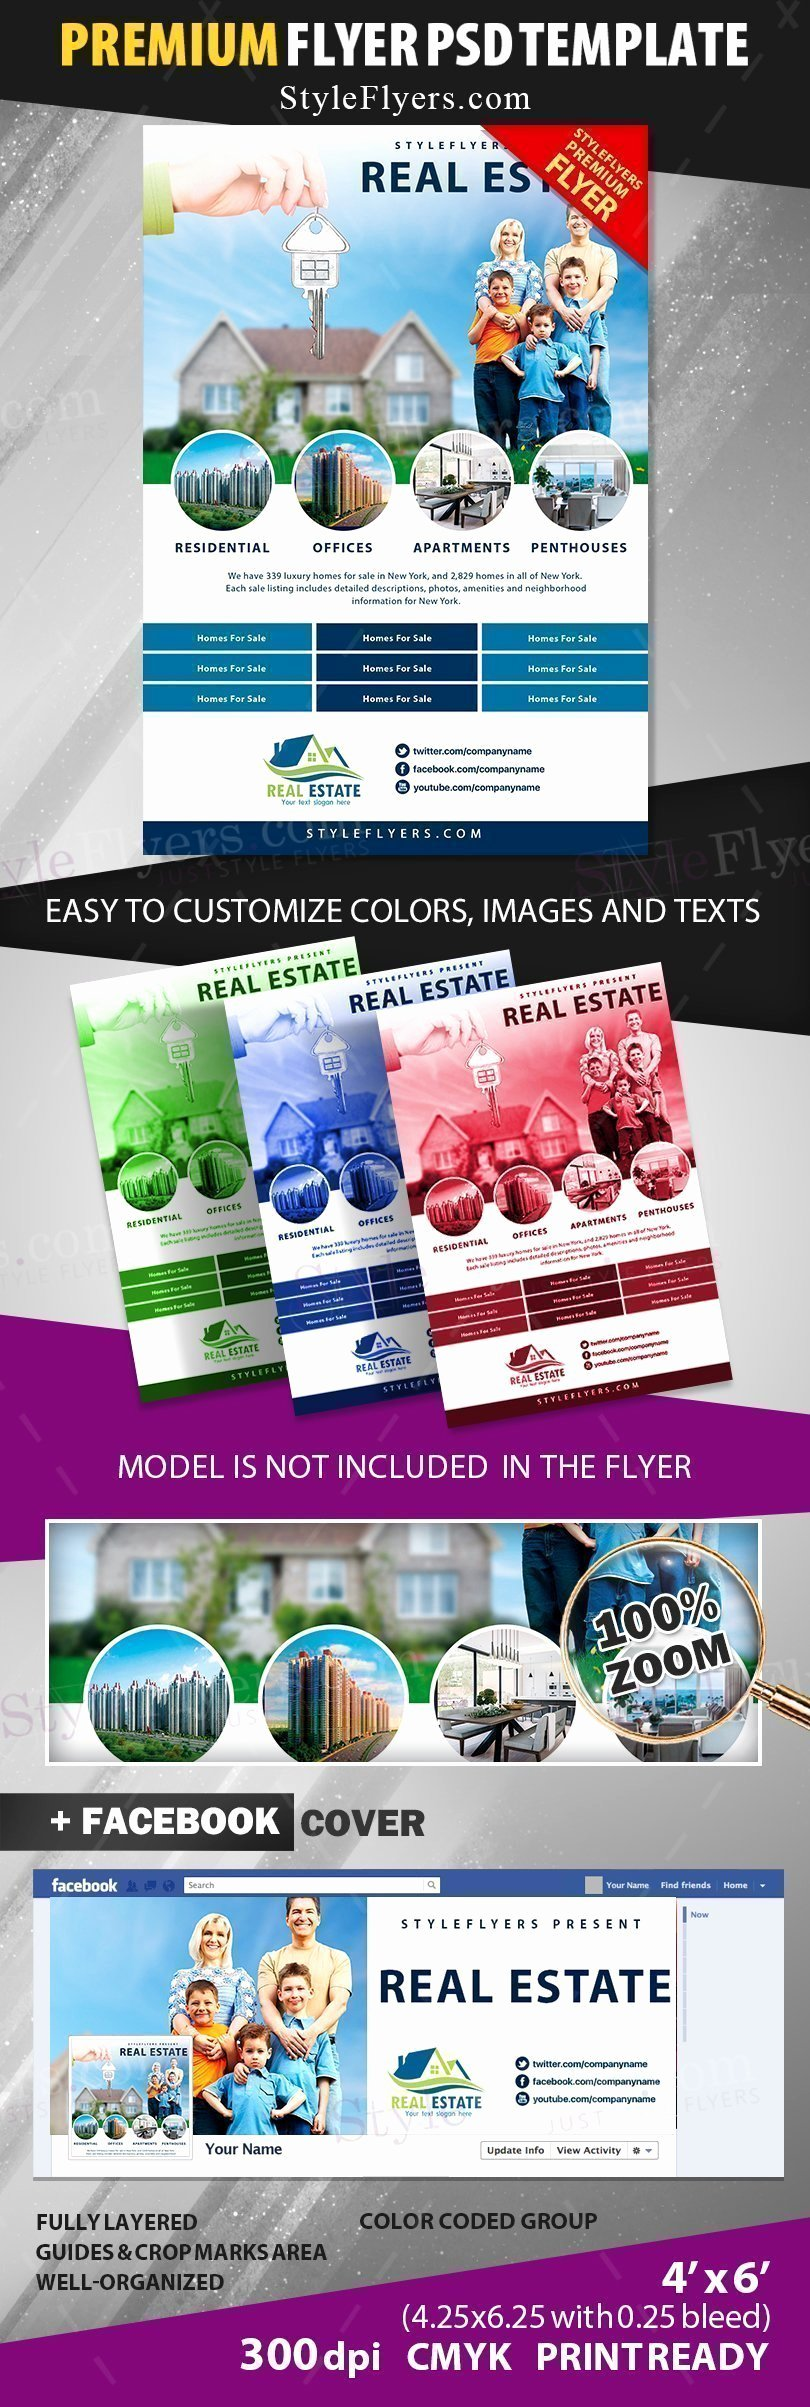 Real Estate Flyer Template Psd Lovely Real Estate Psd Flyer Template Styleflyers